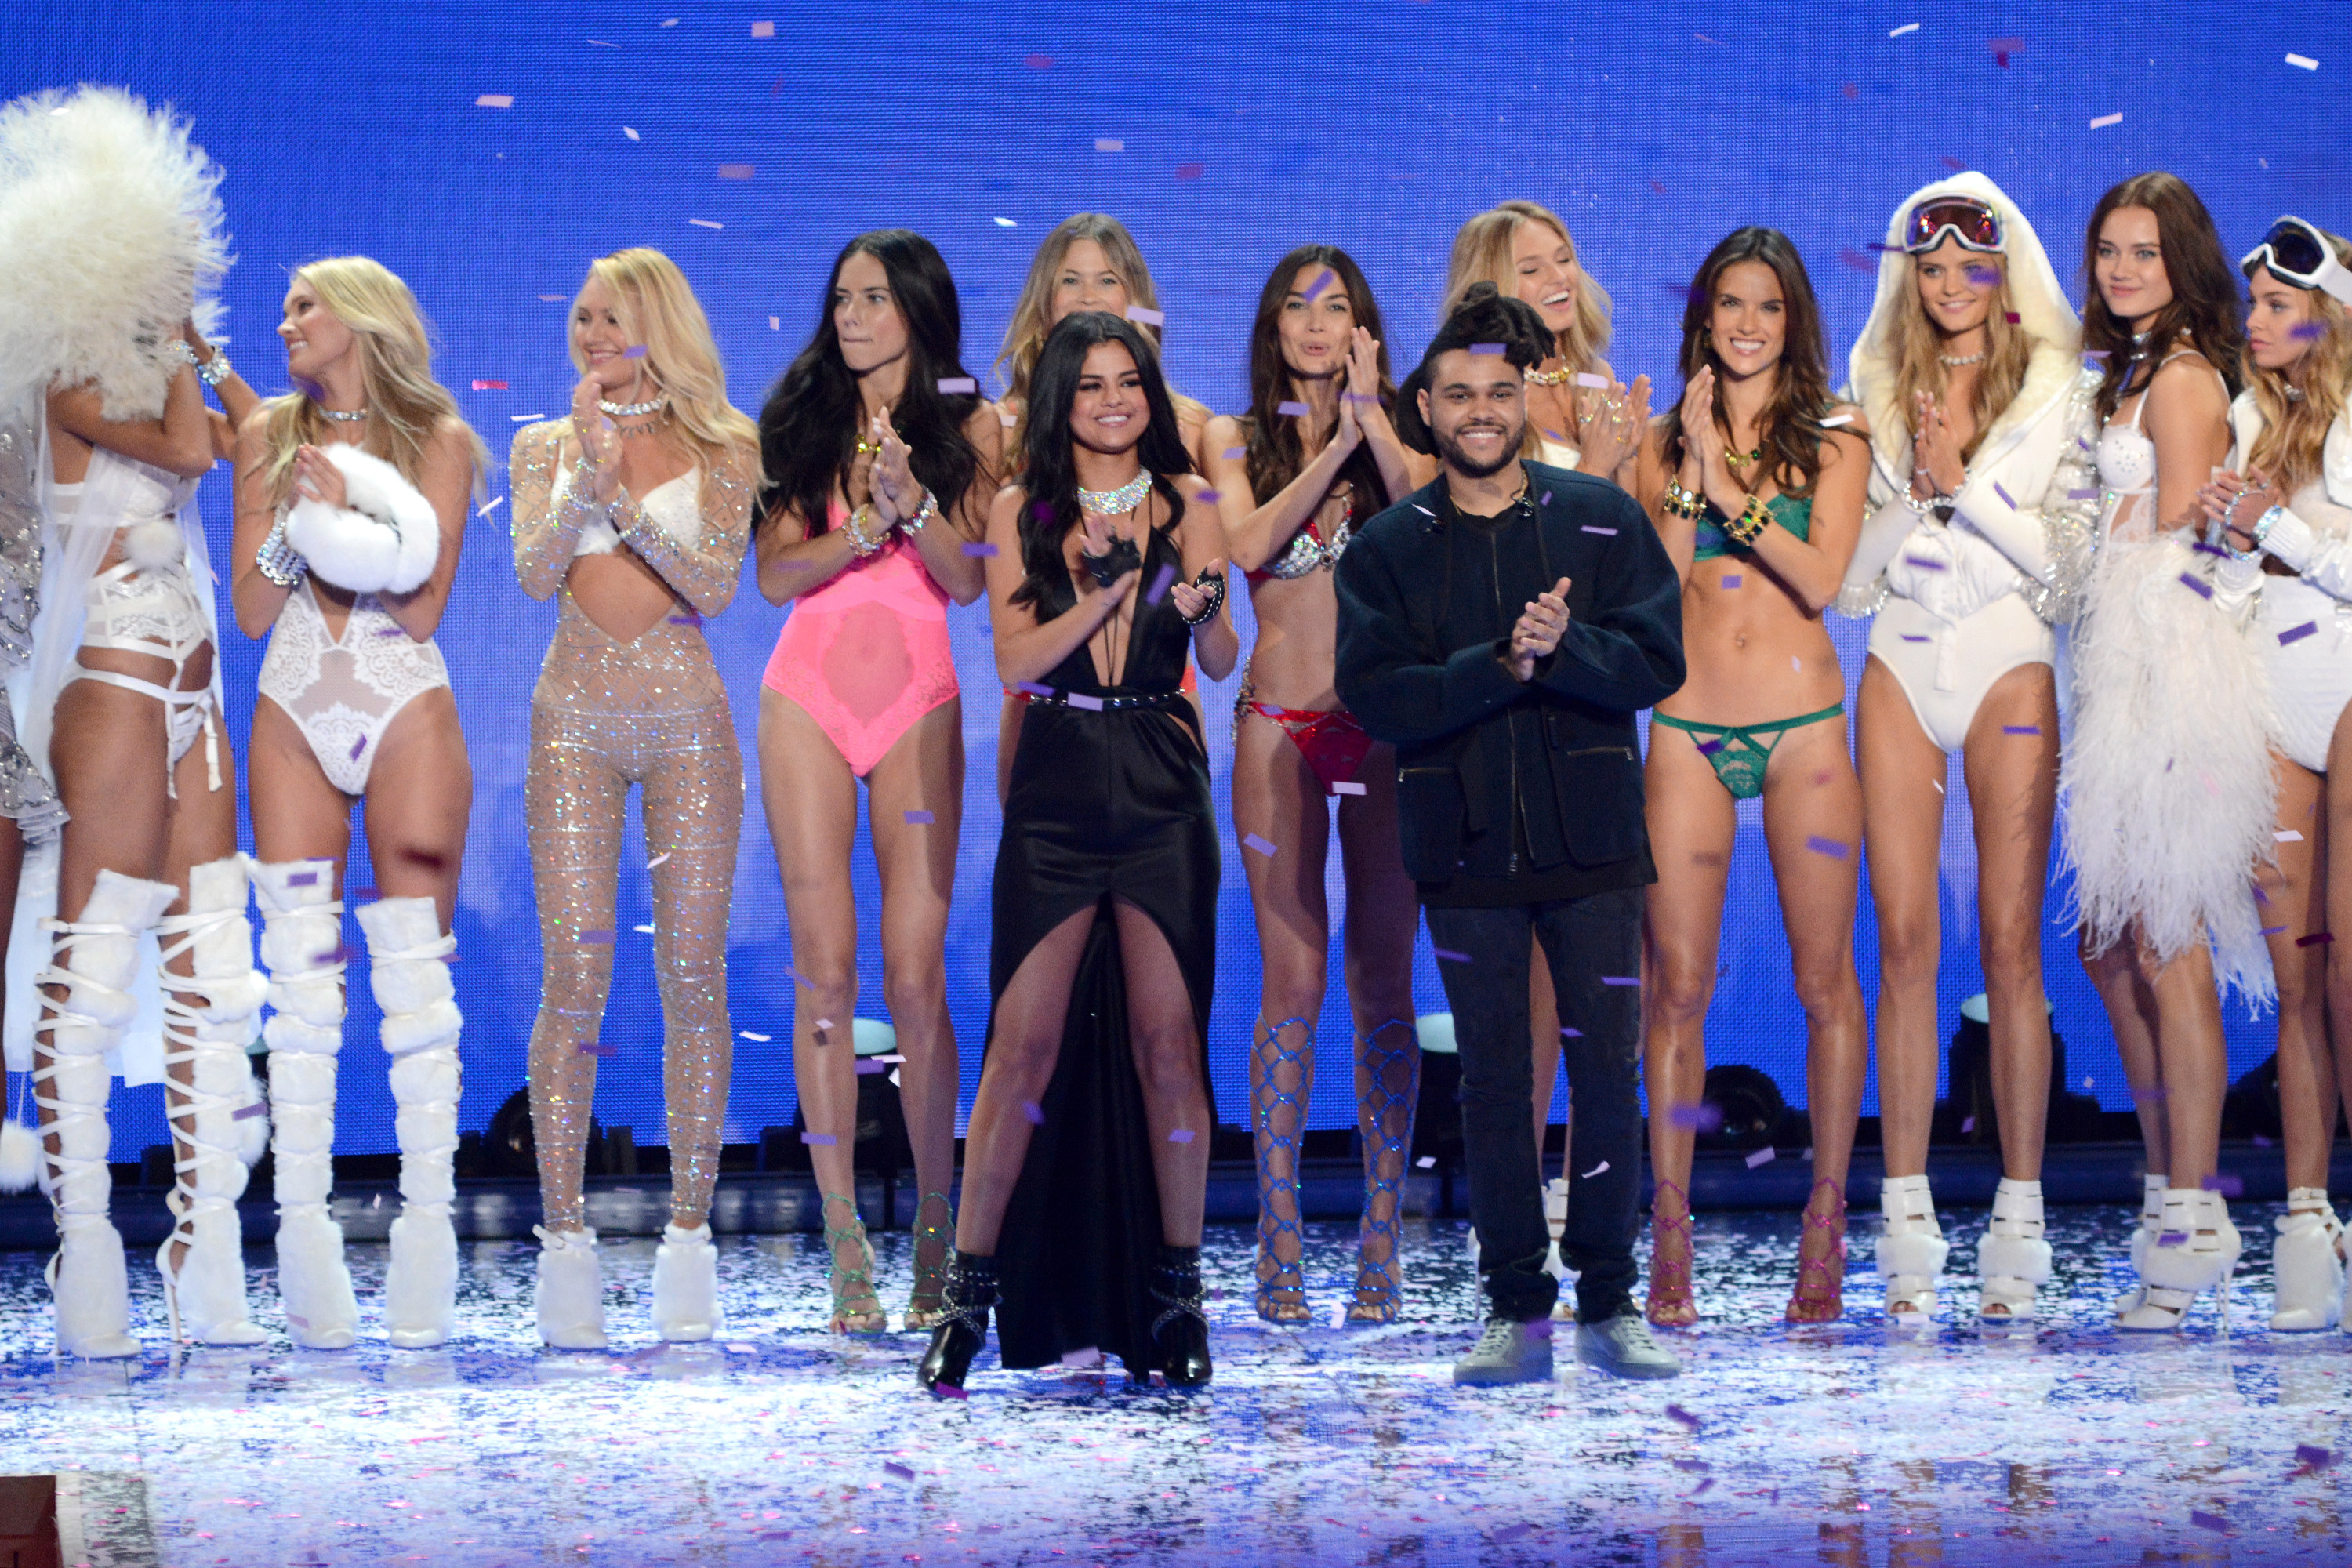 Selena Gomez and The Weekend at the 2015 Victoria's Secret Fashion Show